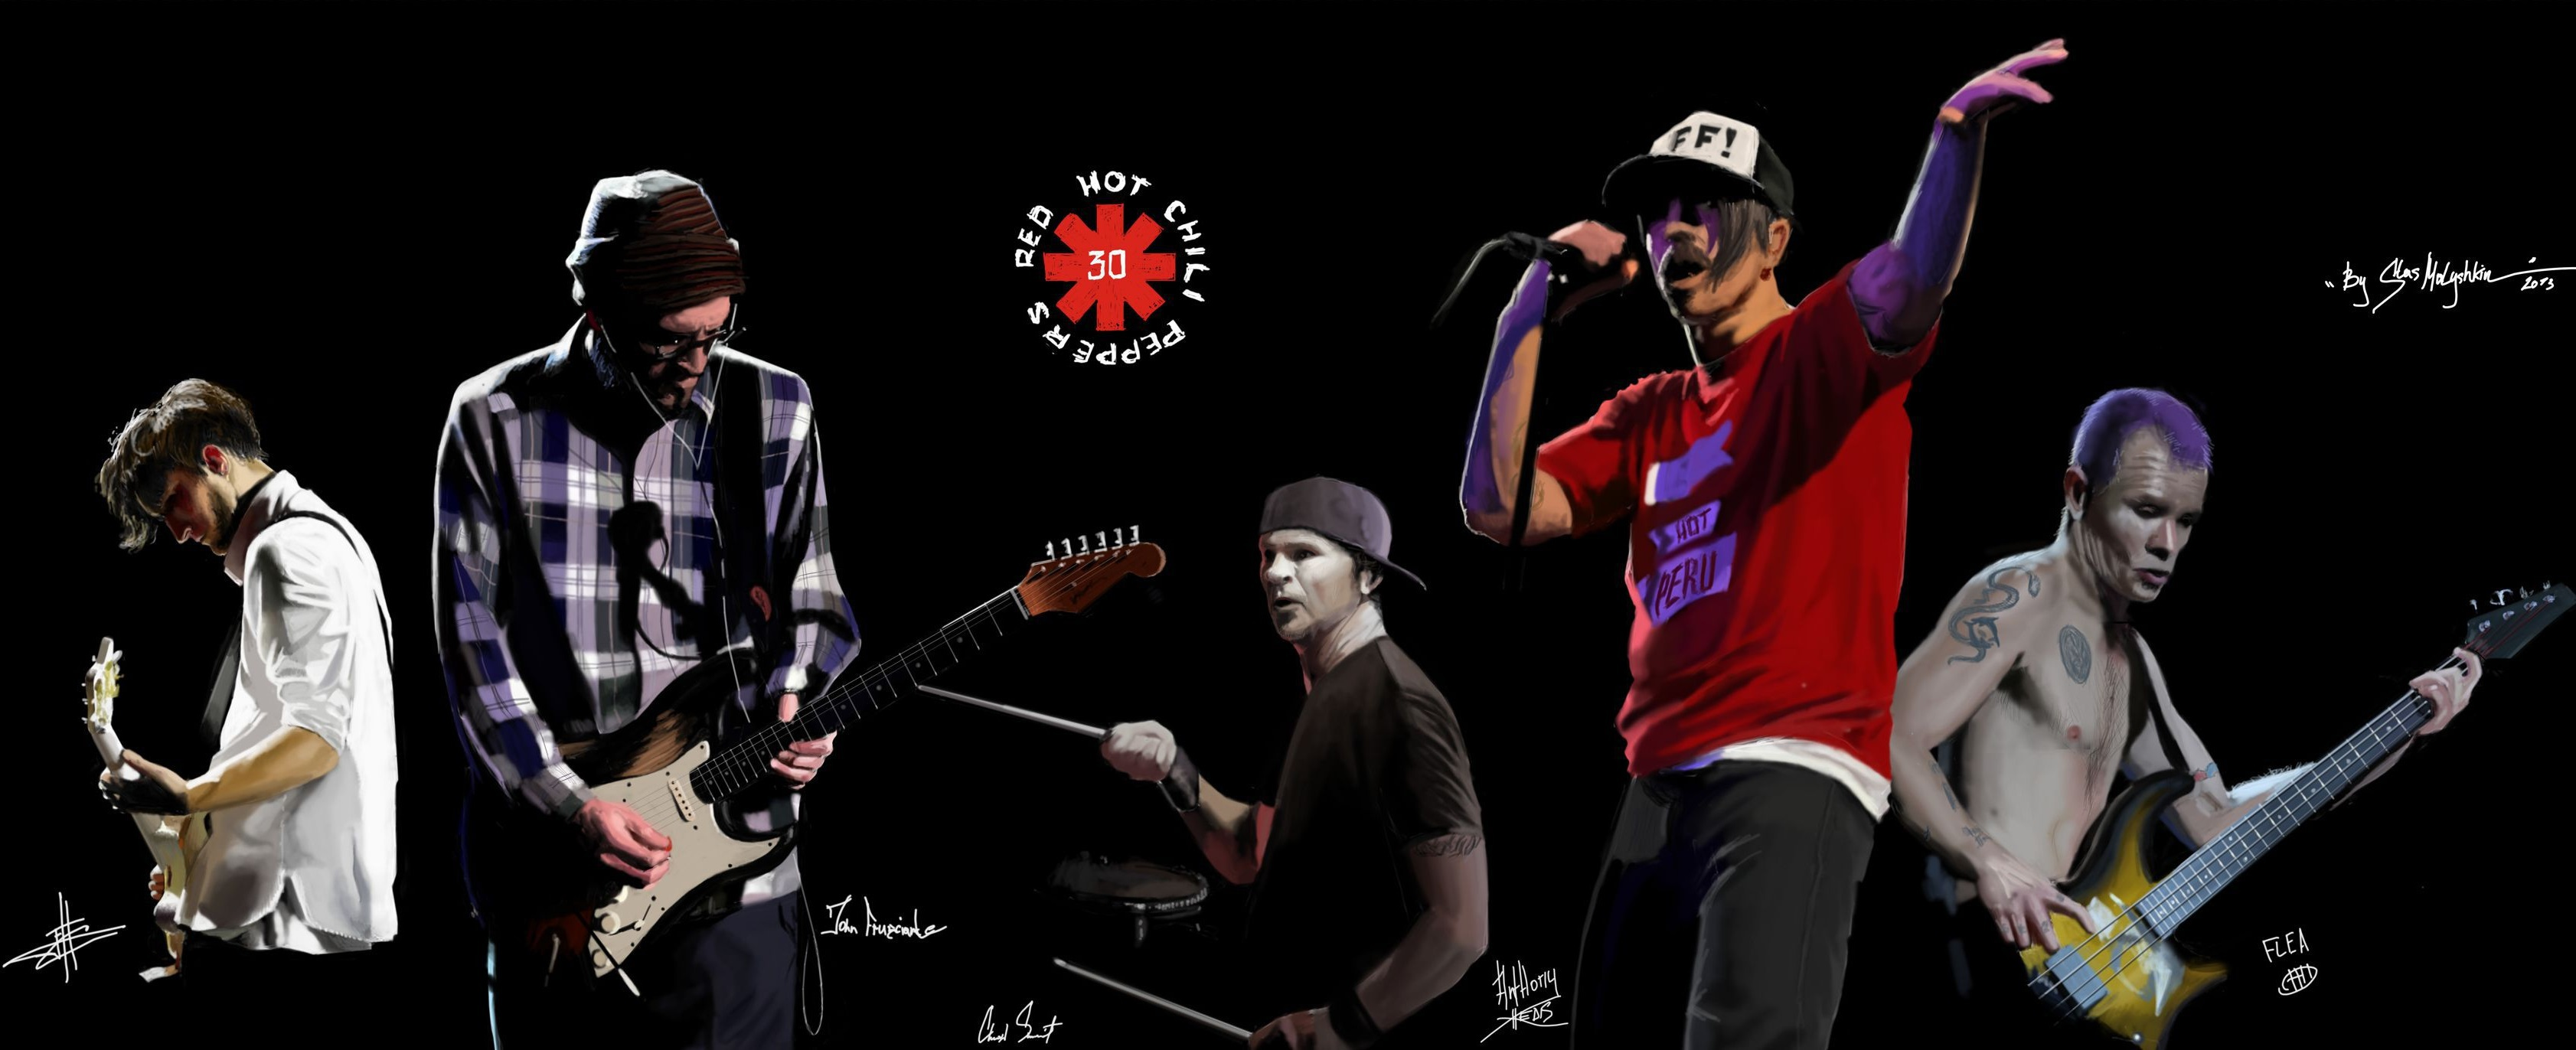 Red Hot Chili Peppers Photos